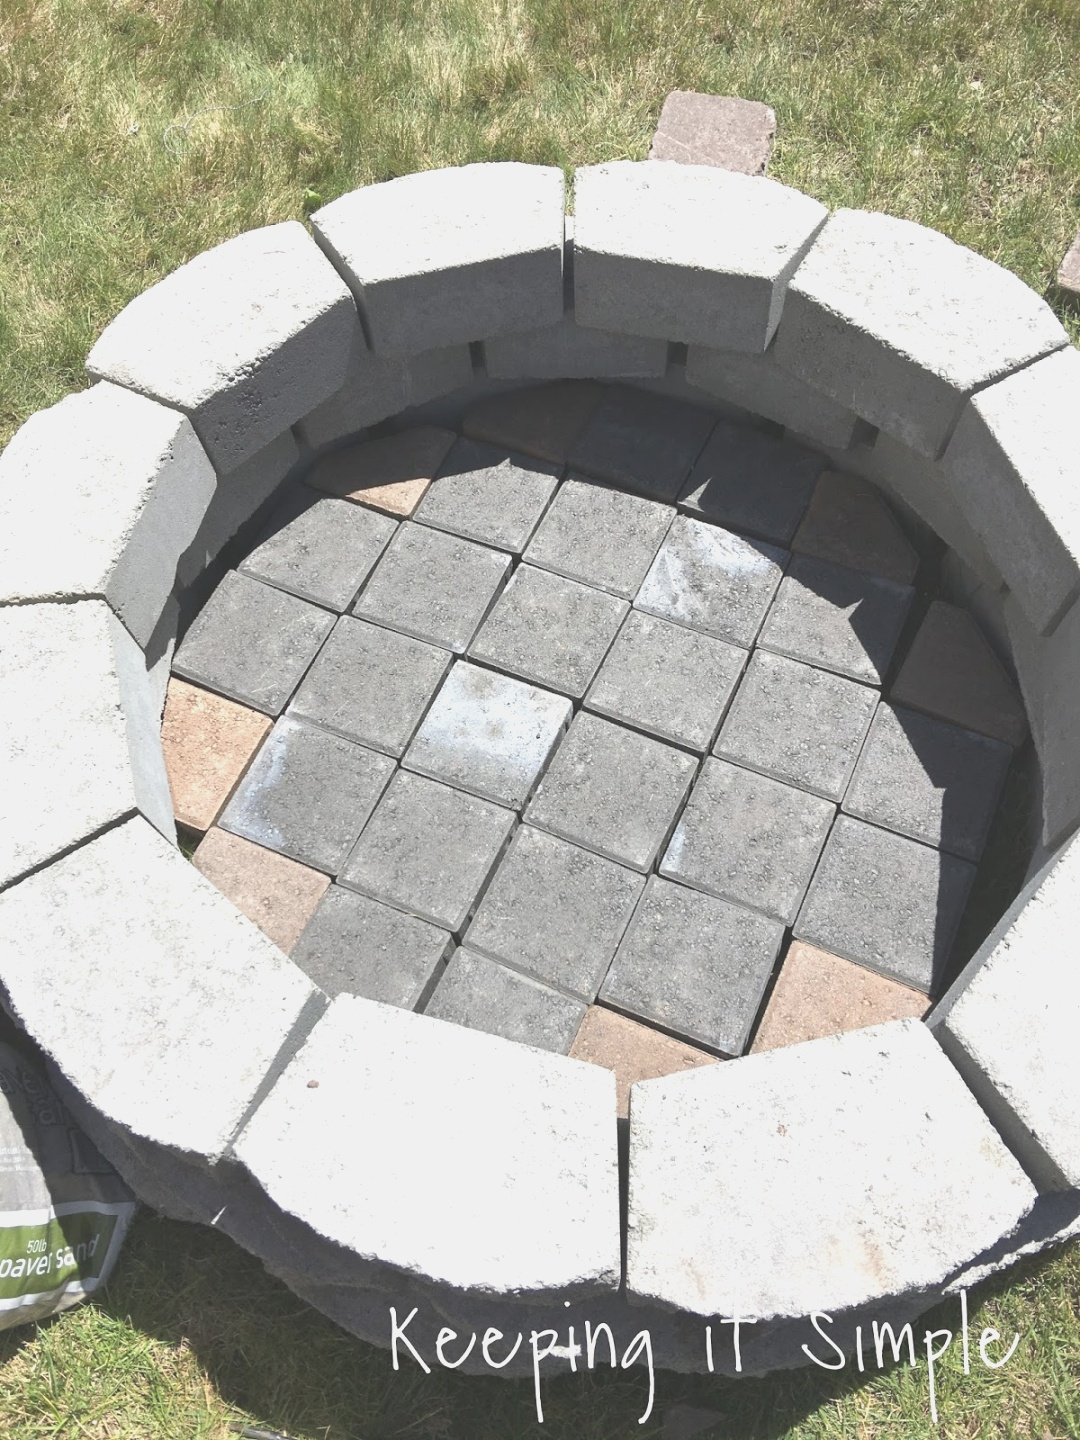 diy fire pit   How to Build a DIY Fire Pit for Only $60 - Keeping it Simple Crafts   diy fire pit